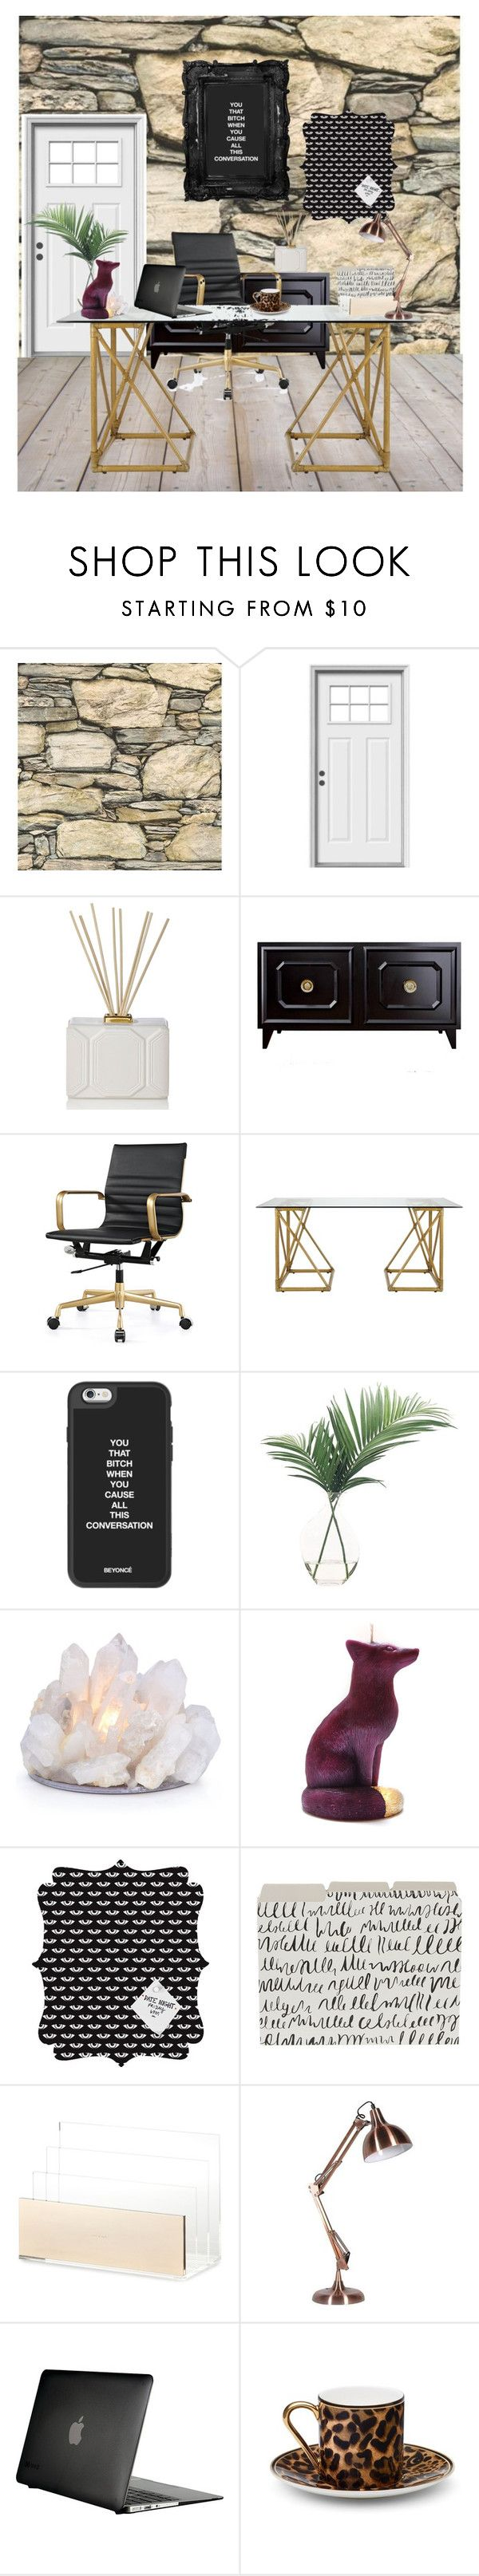 """The office"" by britt-catlynne-weatherall on Polyvore featuring interior, interiors, interior design, home, home decor, interior decorating, Craftsman, Nest Fragrances, Selamat and NDI"